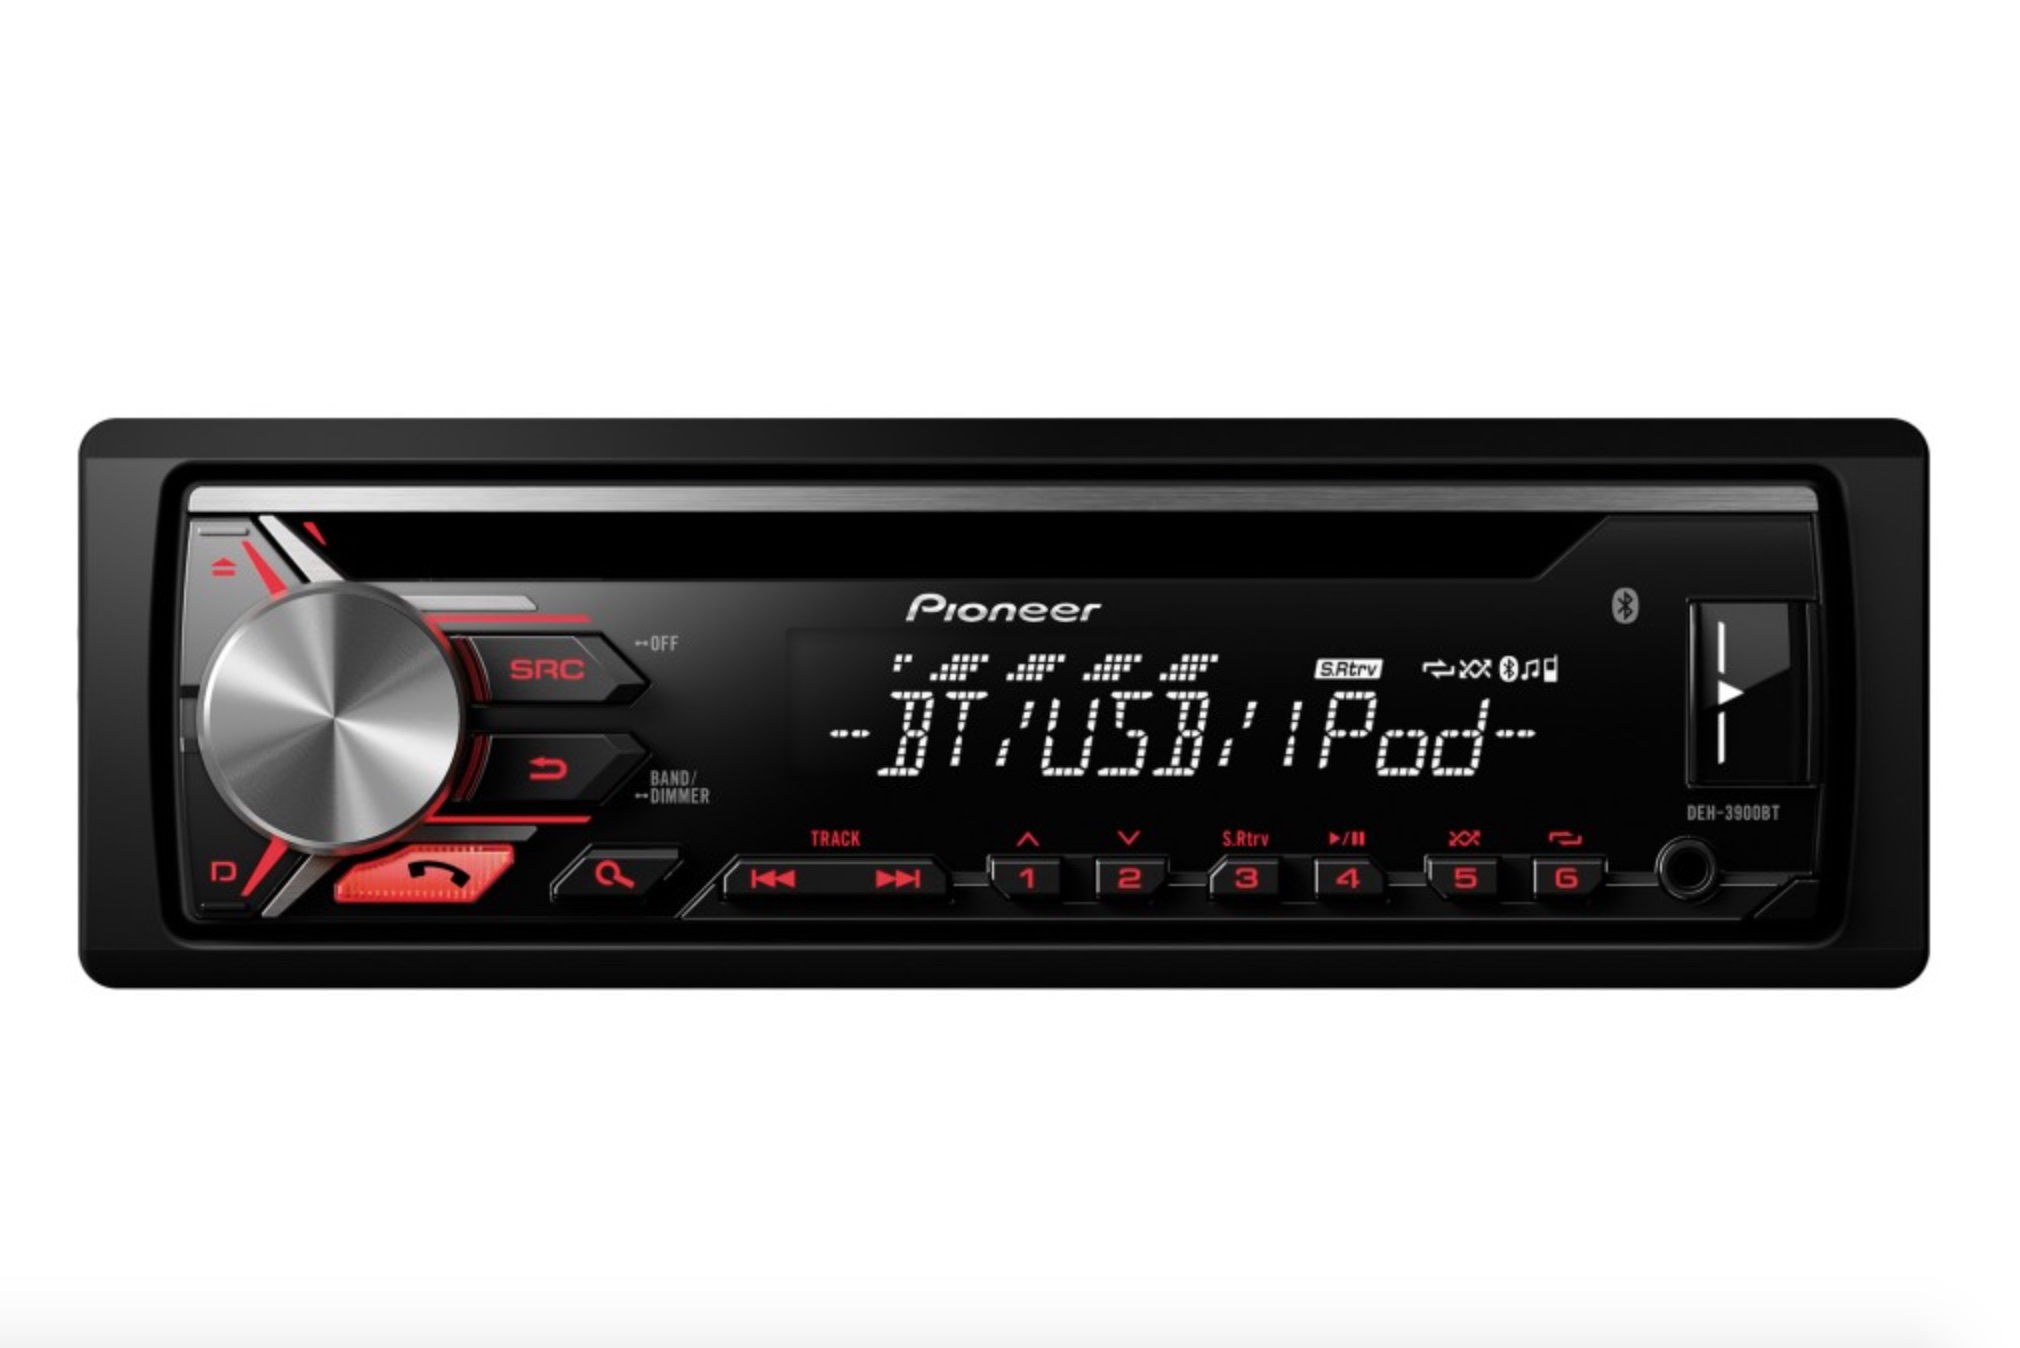 Pioneer DEH-3900BT CD/Tuner with Bluetooth hands-free in-car pho